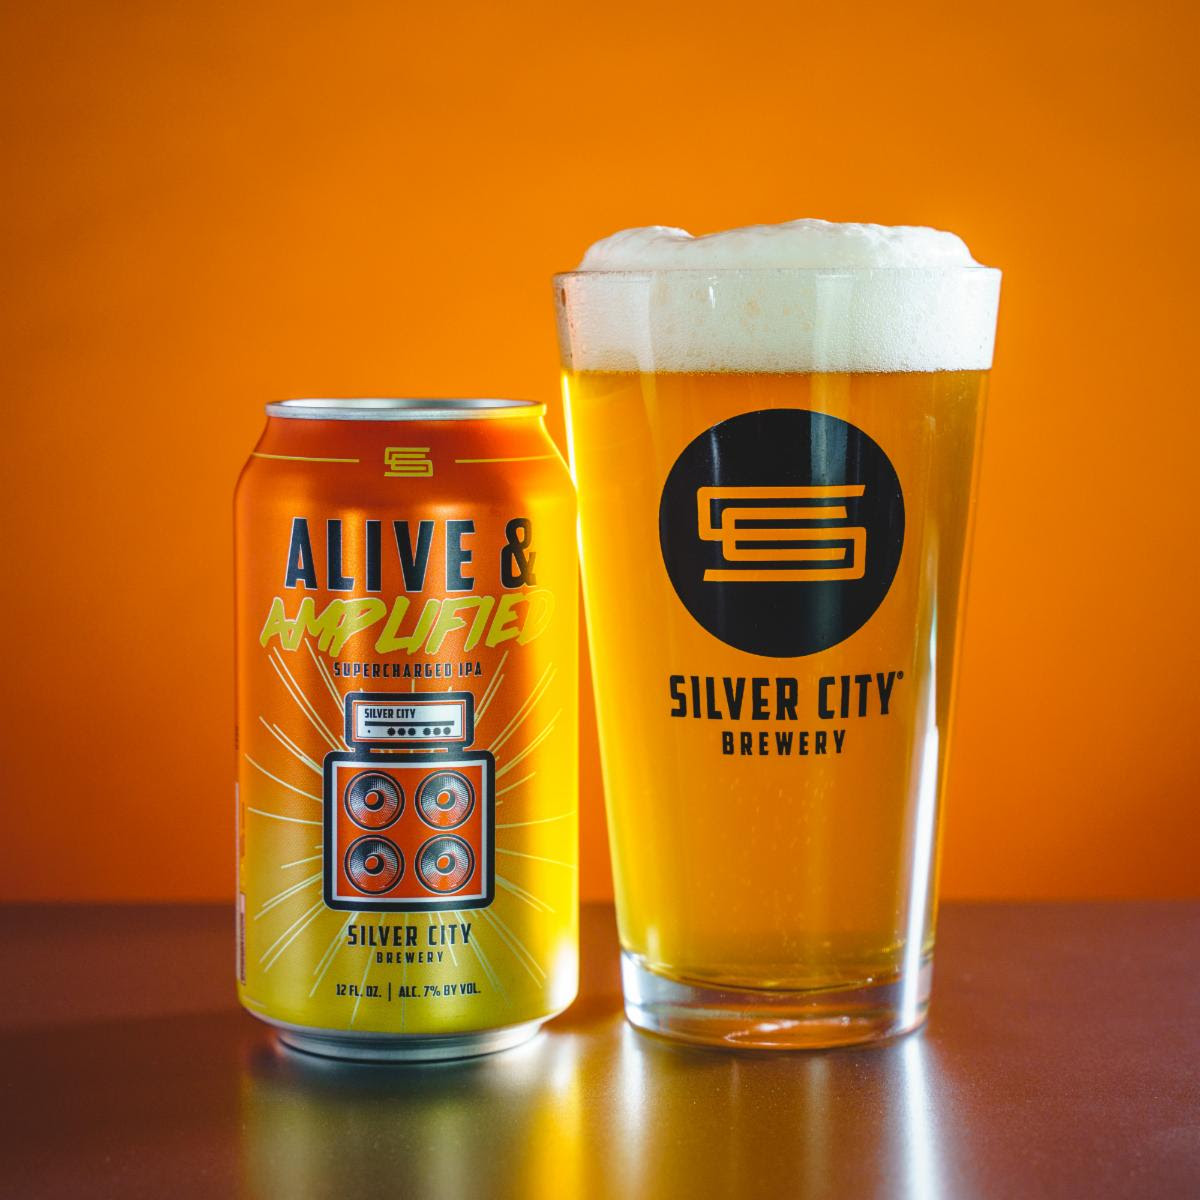 image of Alive & Amplified Supercharged IPA courtesy of Silver City Brewery